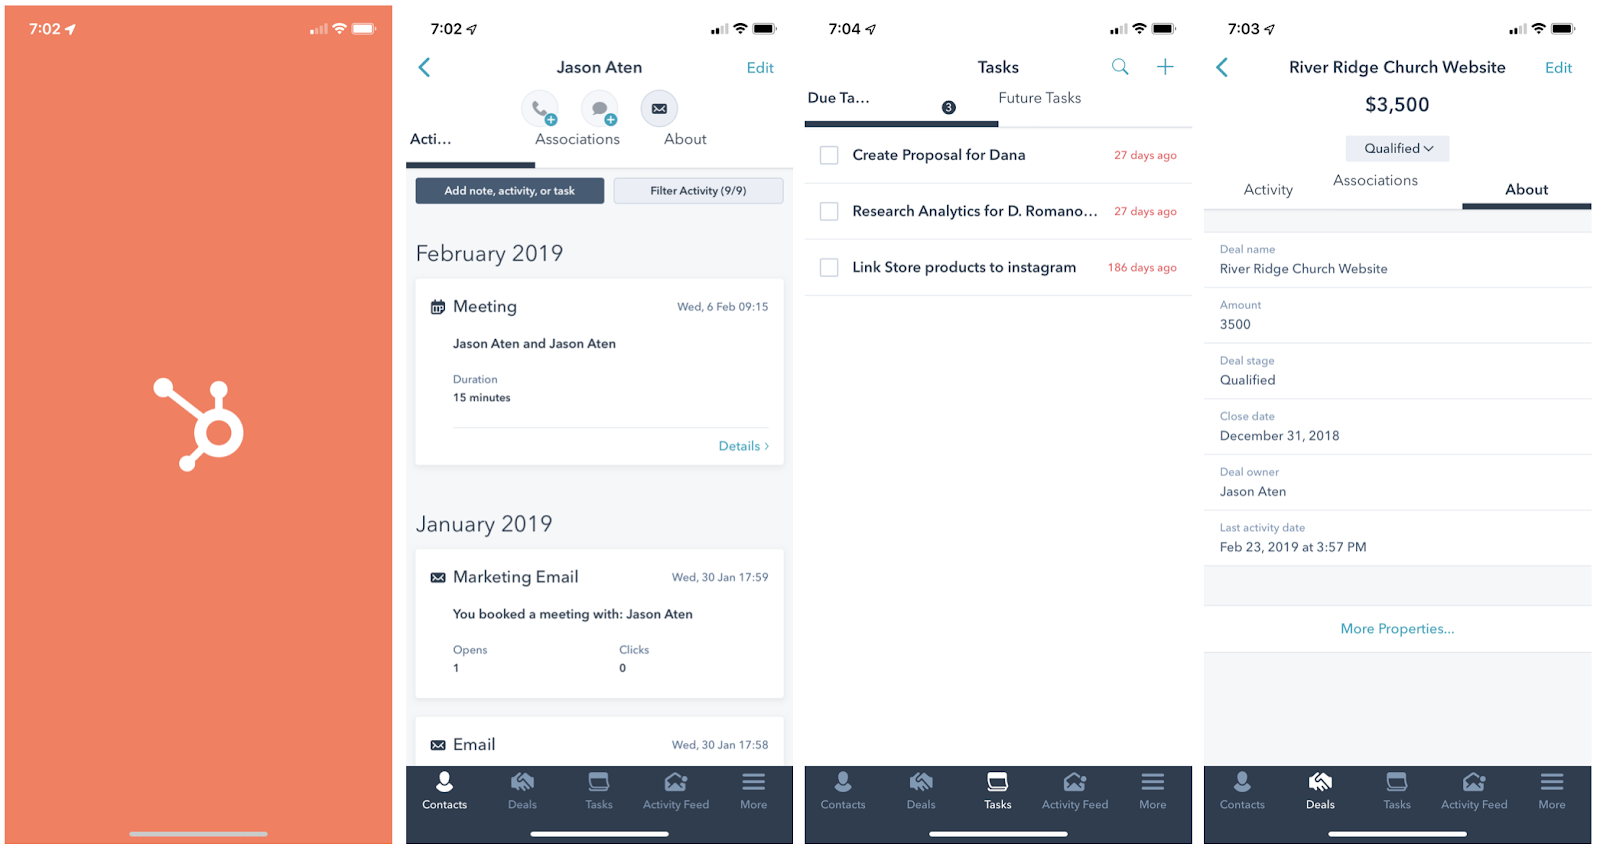 HubSpot mobile CRM app interface